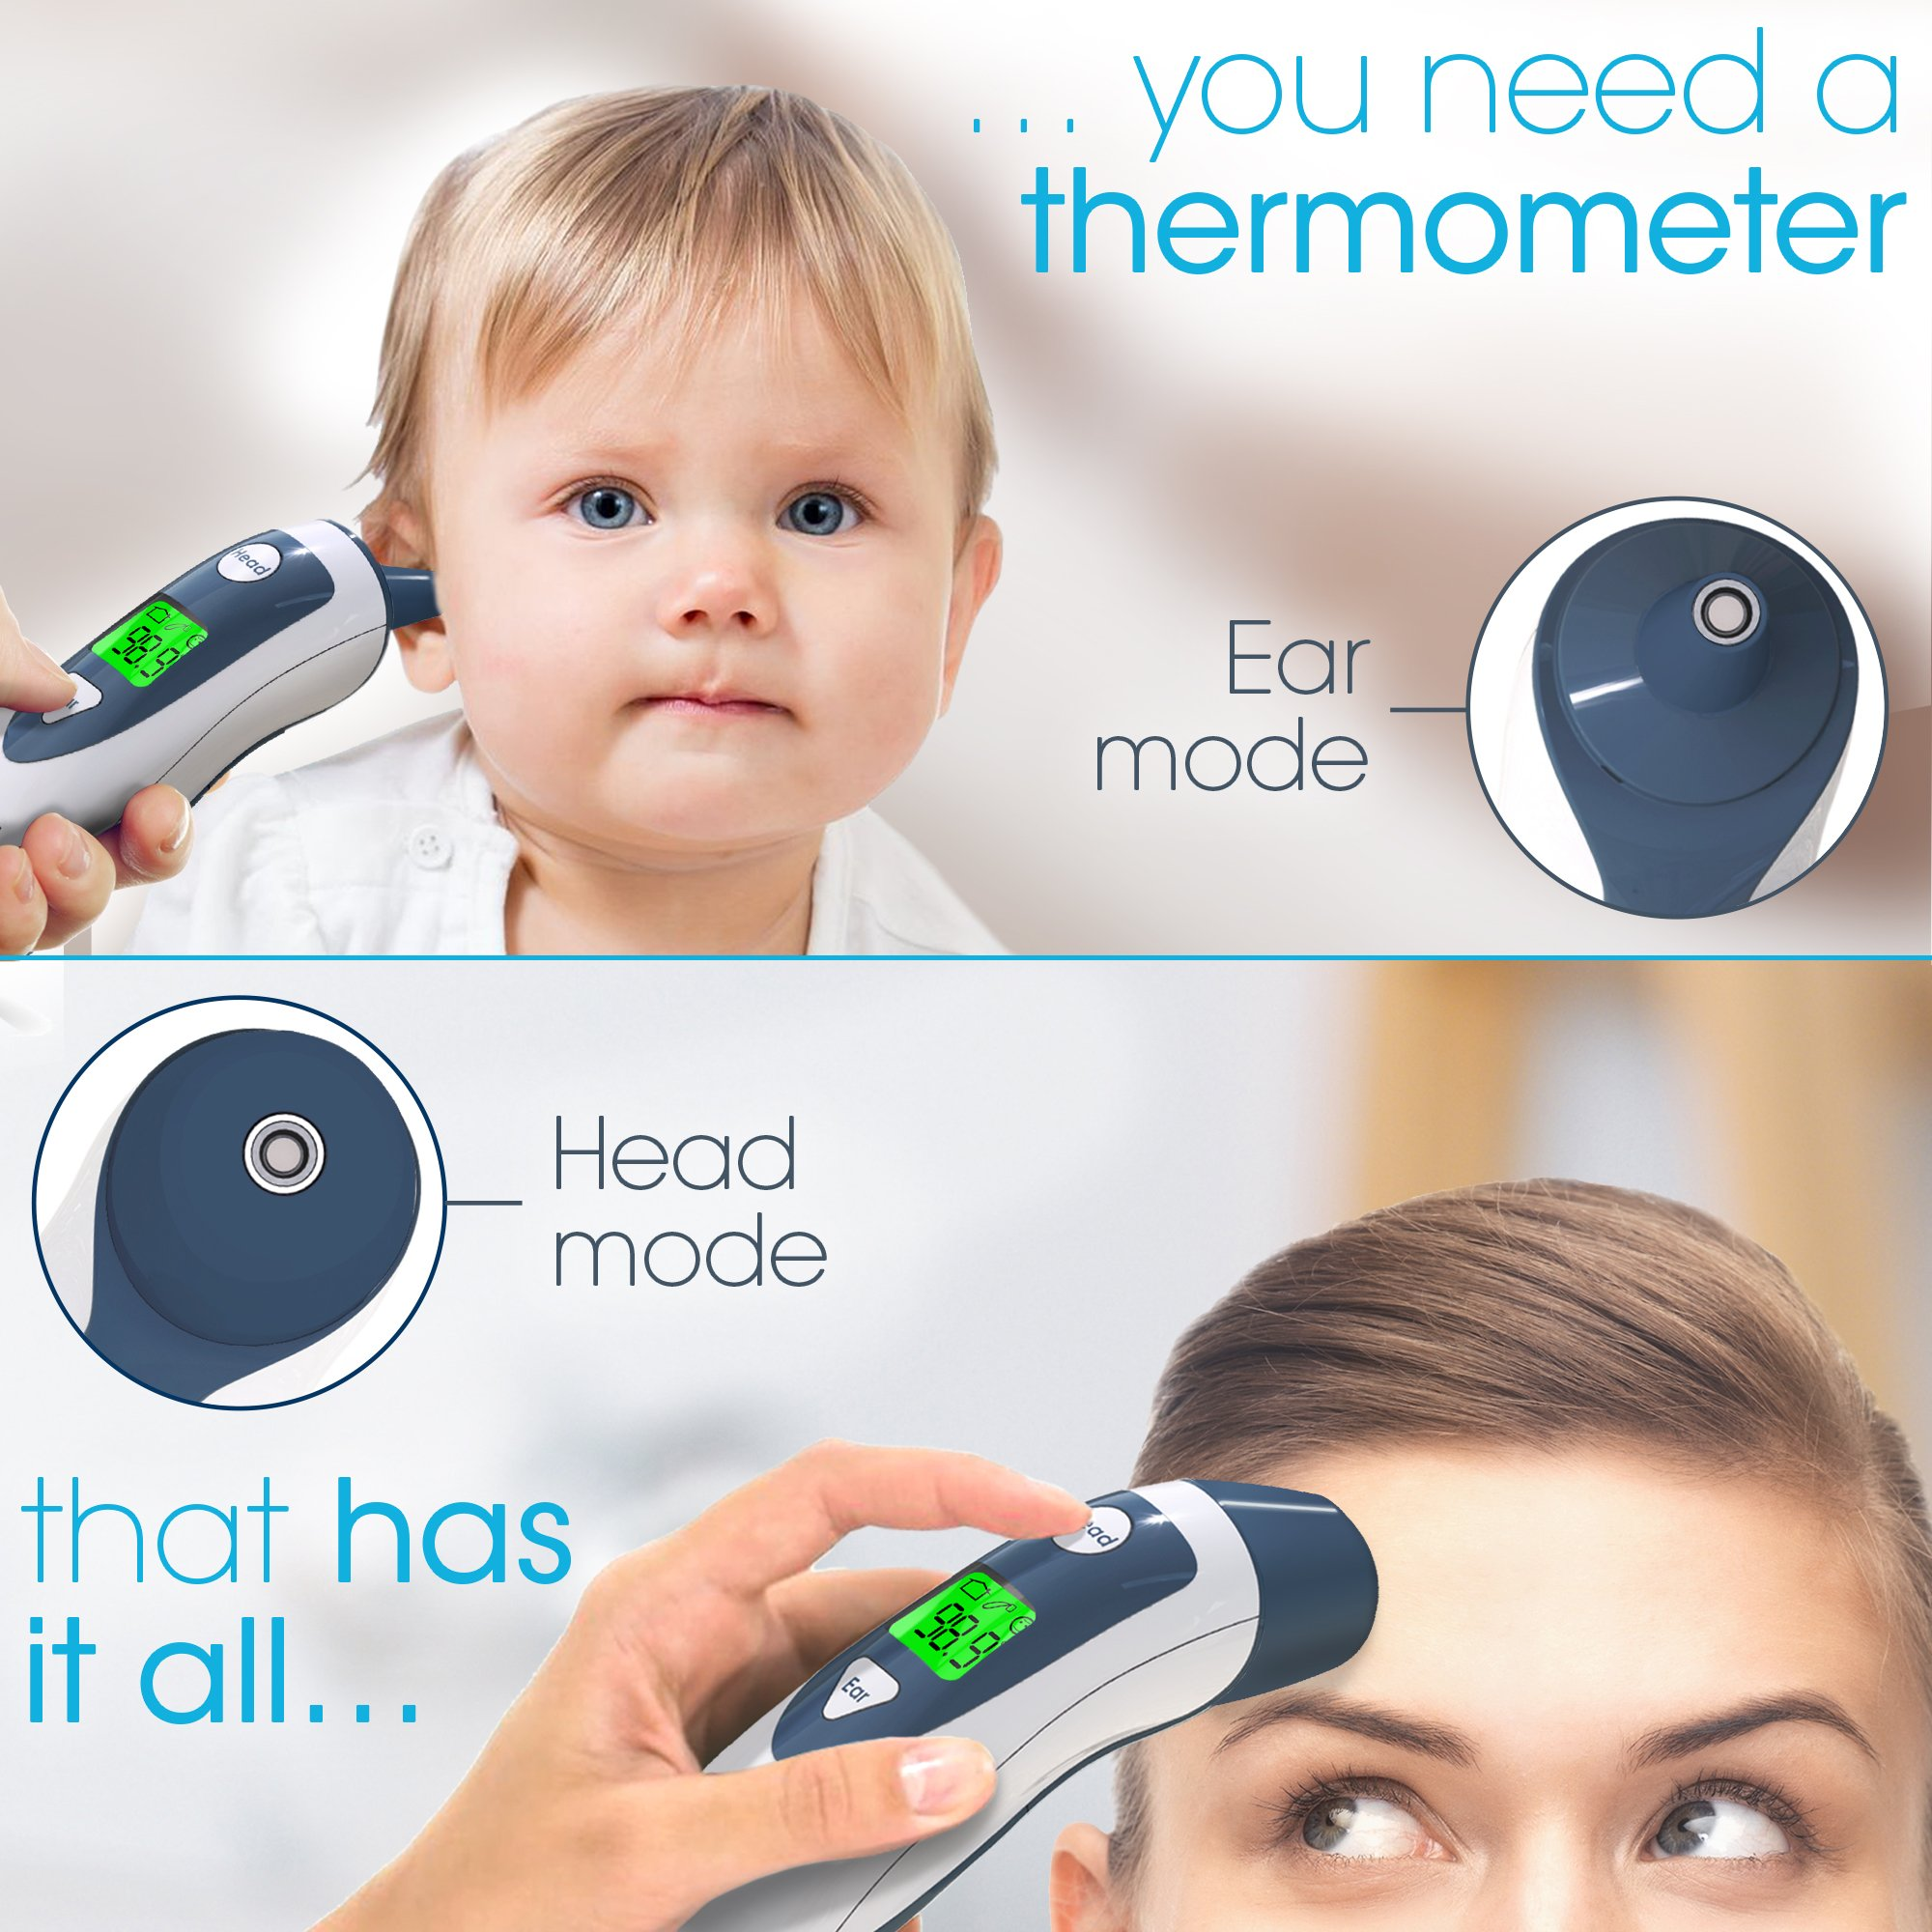 Baby Forehead Thermometer with Ear Function- iProven DMT489 Gray Cap - FDA and CE Approved - Clinical Accuracy Suitable for Baby, Infant, Toddler and Adults by iProvèn (Image #3)